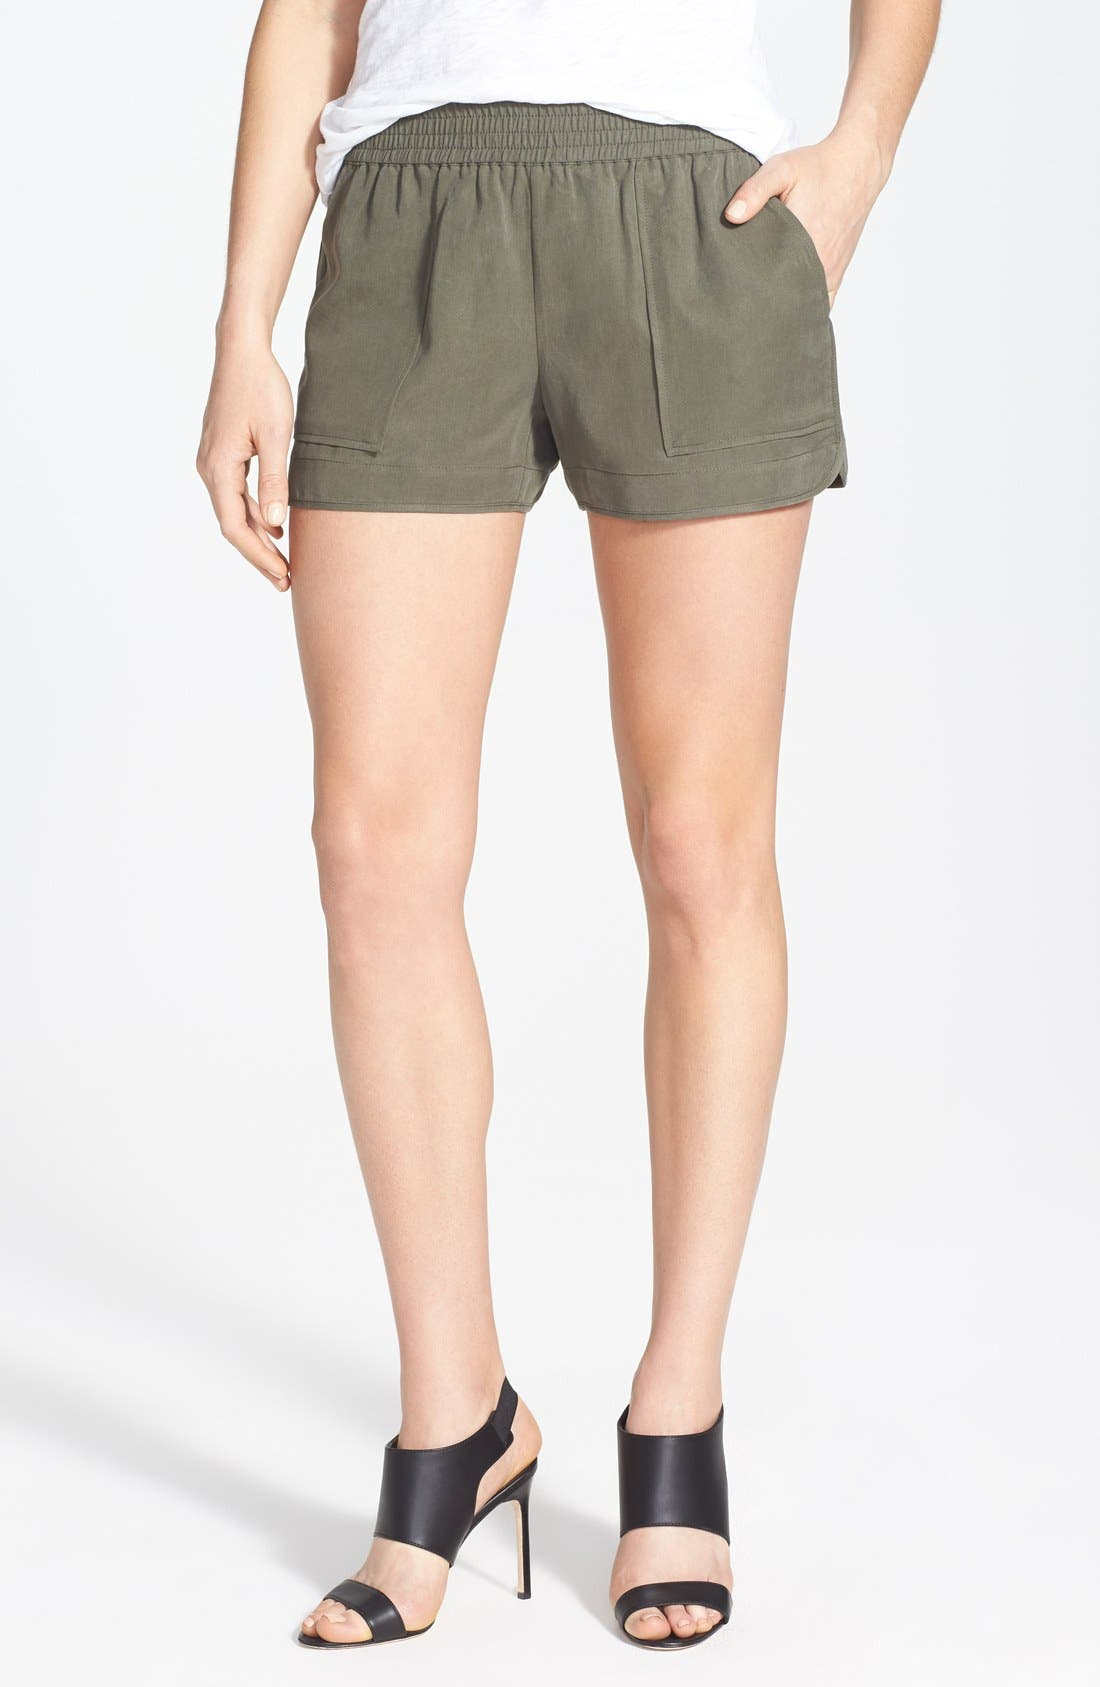 Joie Beso Woven Shorts